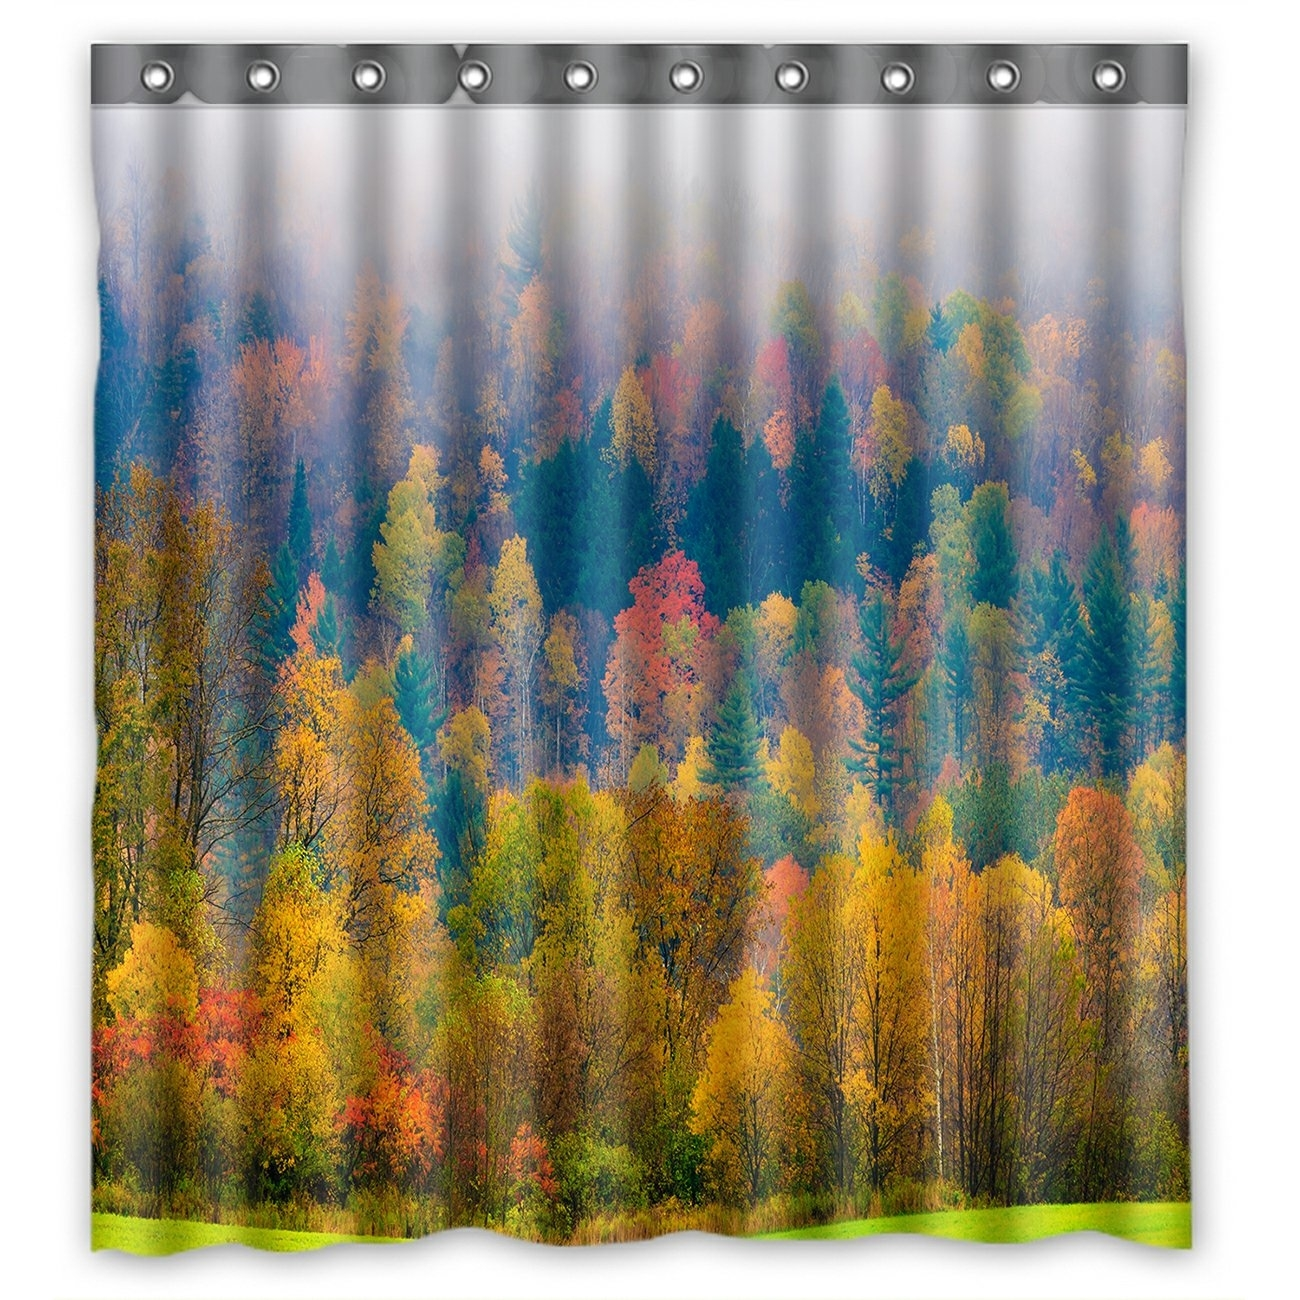 Forest Landscape Shower Curtain, Field of Trees during Fall Foliage Shower Curtain 66x72 inch